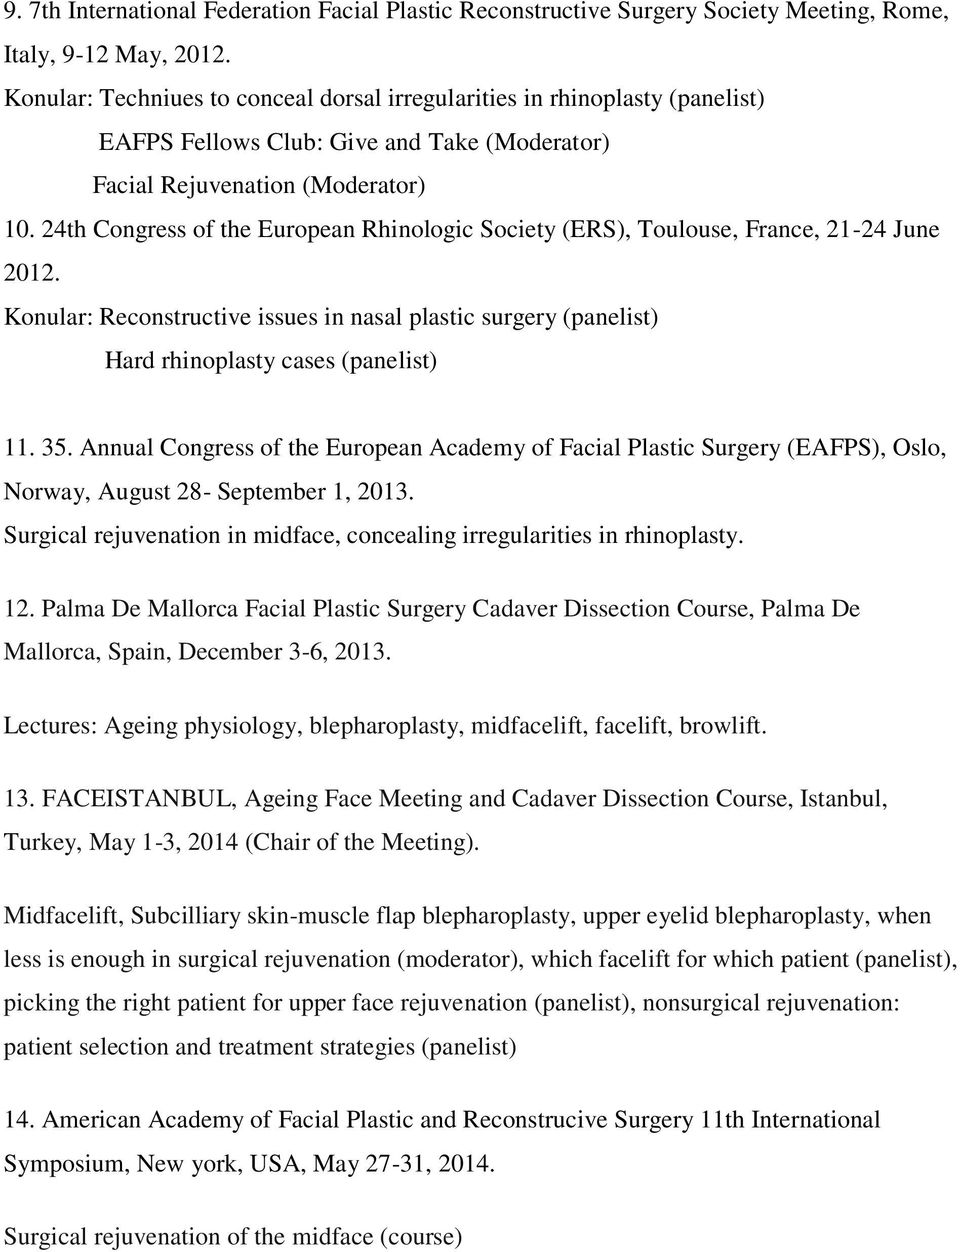 24th Congress of the European Rhinologic Society (ERS), Toulouse, France, 21-24 June 2012. Konular: Reconstructive issues in nasal plastic surgery (panelist) Hard rhinoplasty cases (panelist) 11. 35.